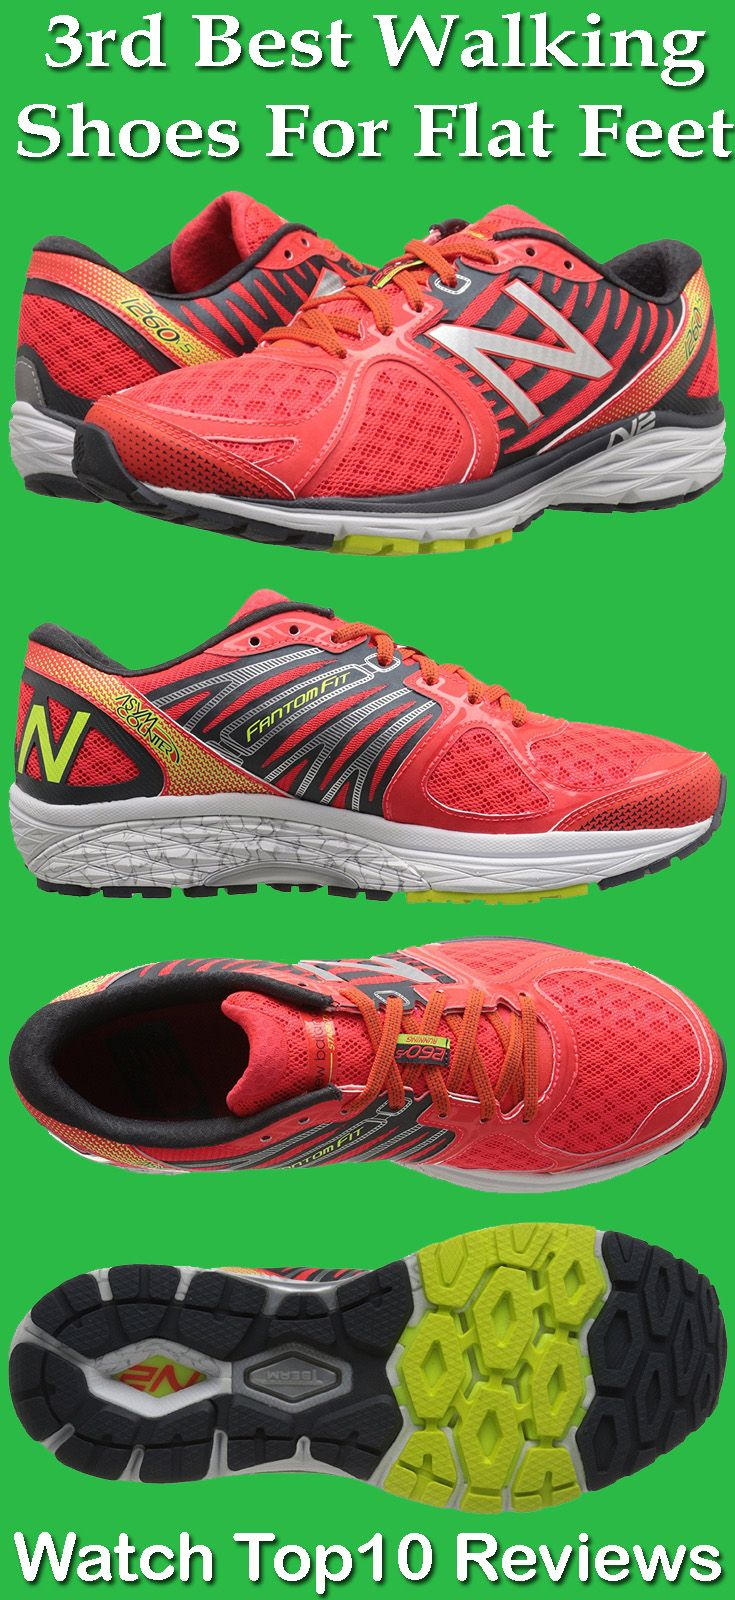 New Balance Men's M1260V5 is one of the best Walking shoes for Flat Feet.